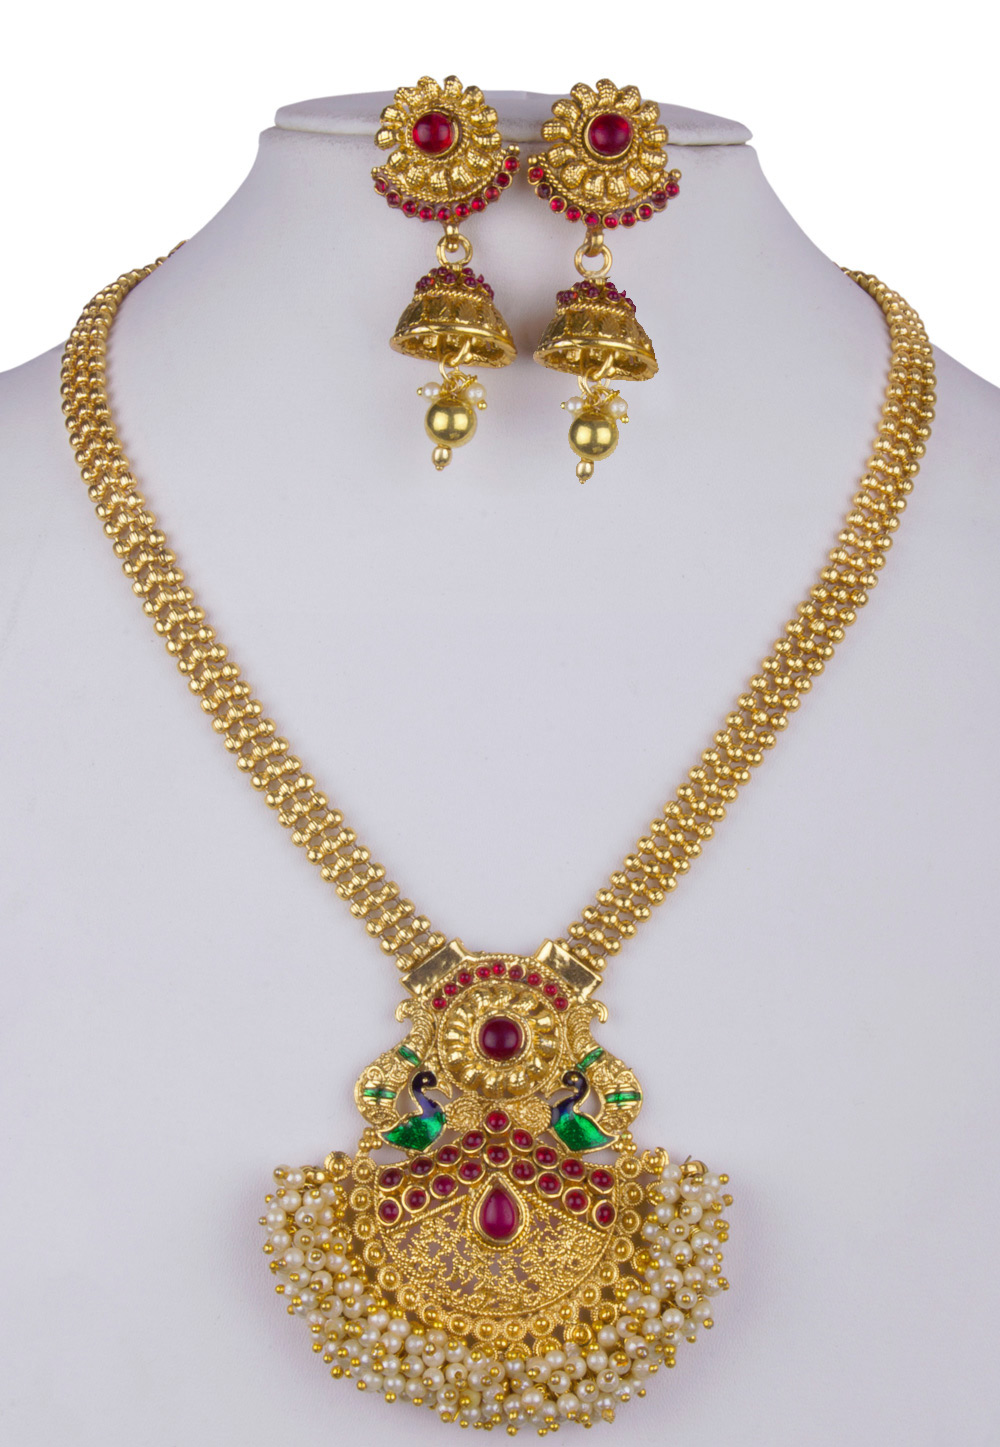 Green Alloy Necklace With Earrings 157154